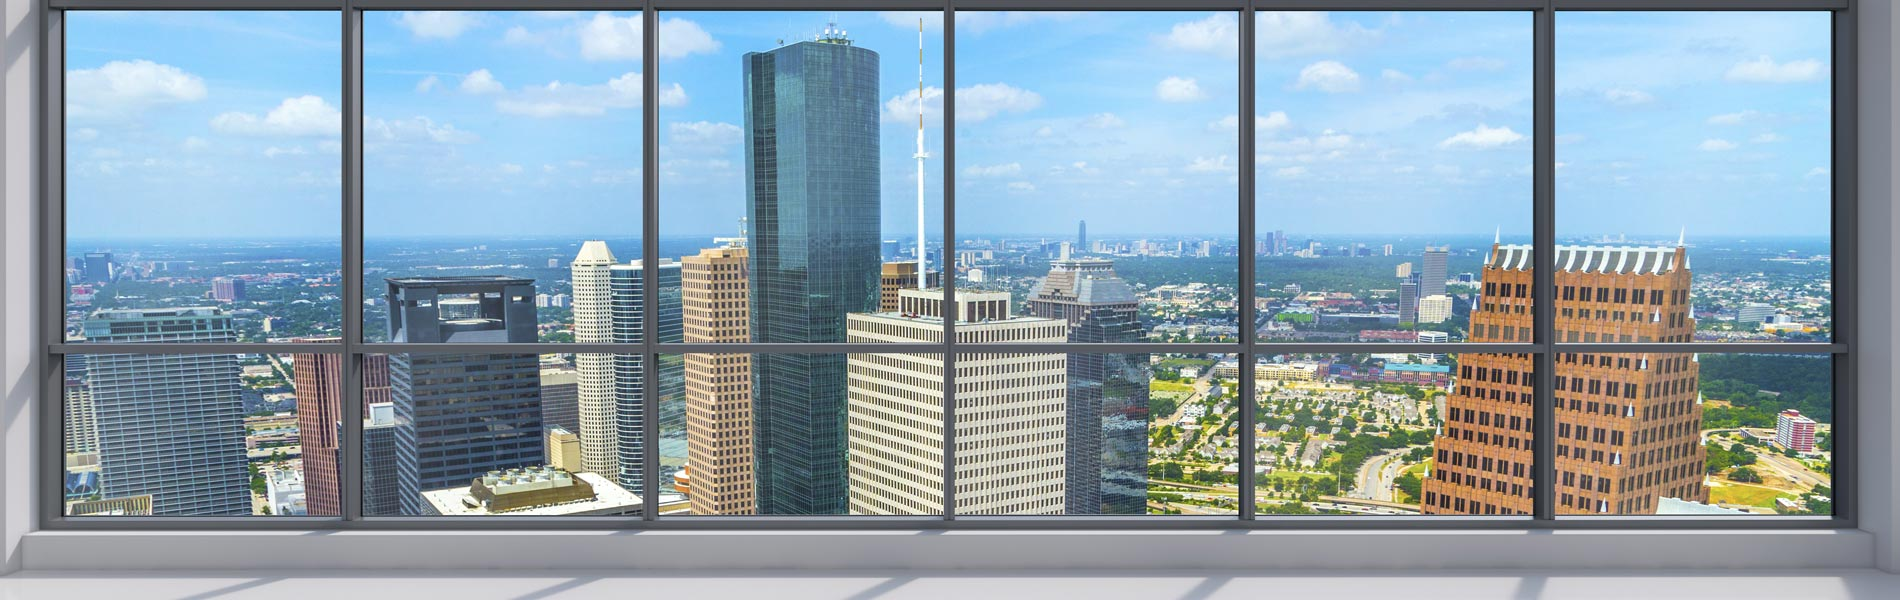 slider_bg_city_window